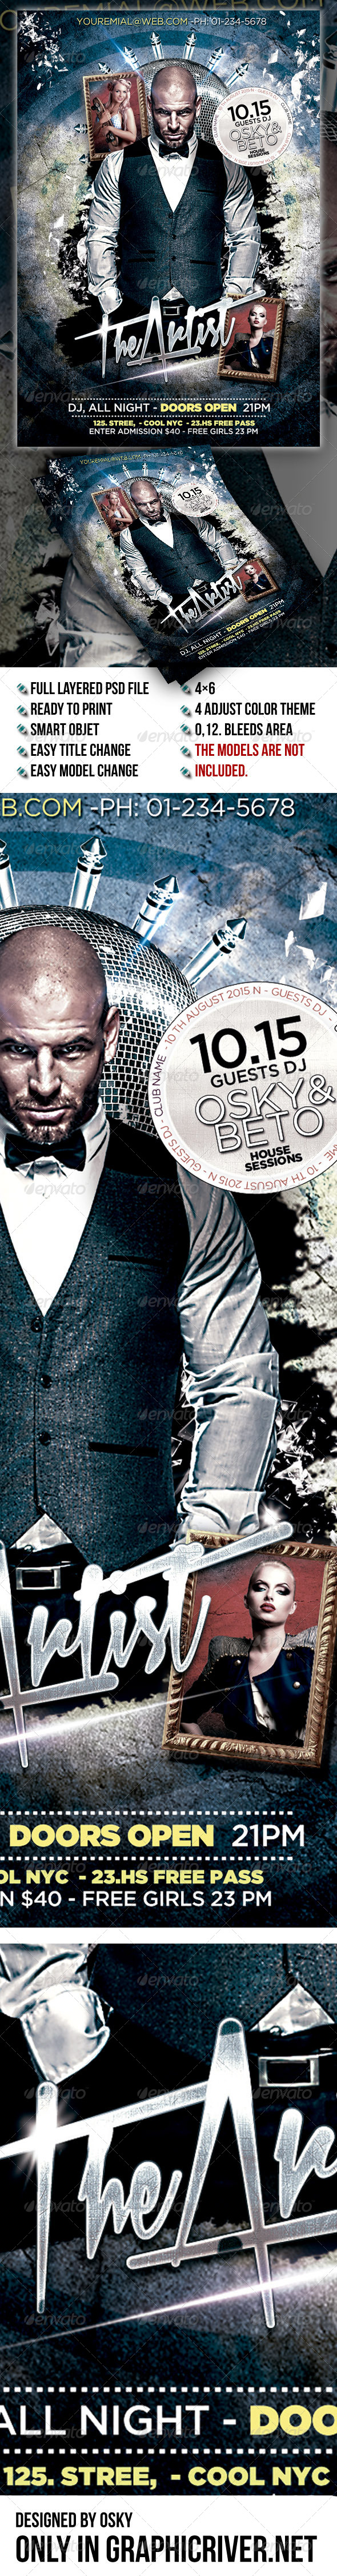 GraphicRiver Dj Event Flyer Template 7849951